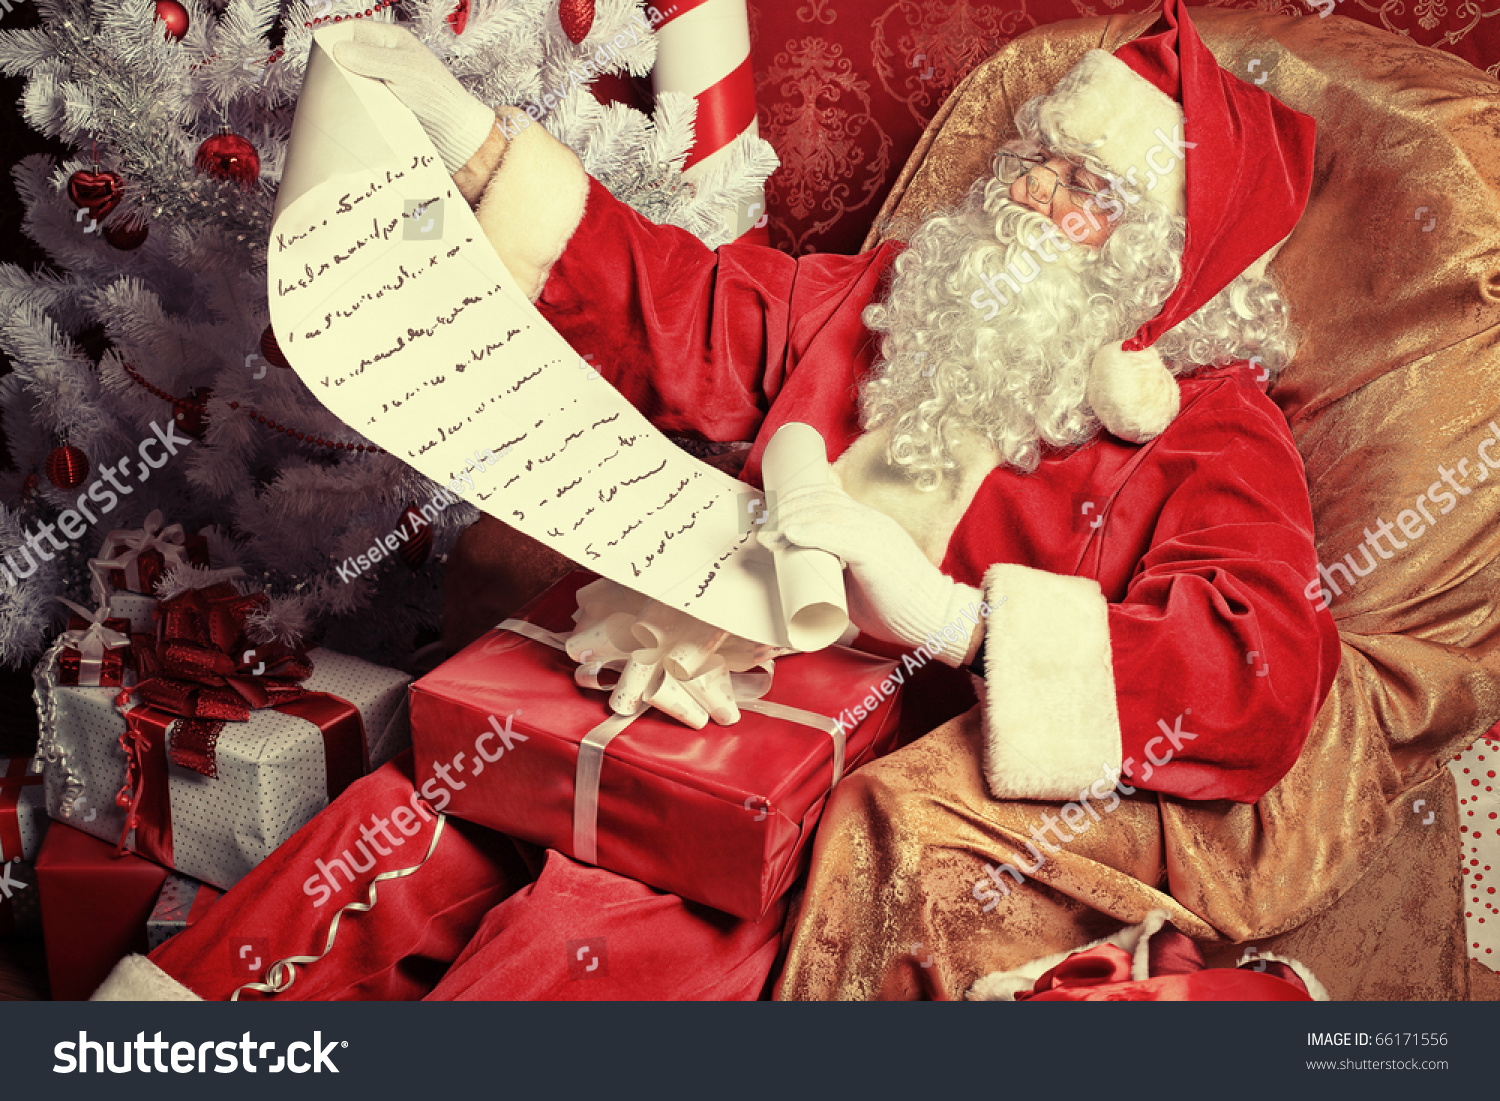 santa claus with presents and new year tree at home christmas - Santa Claus With Presents